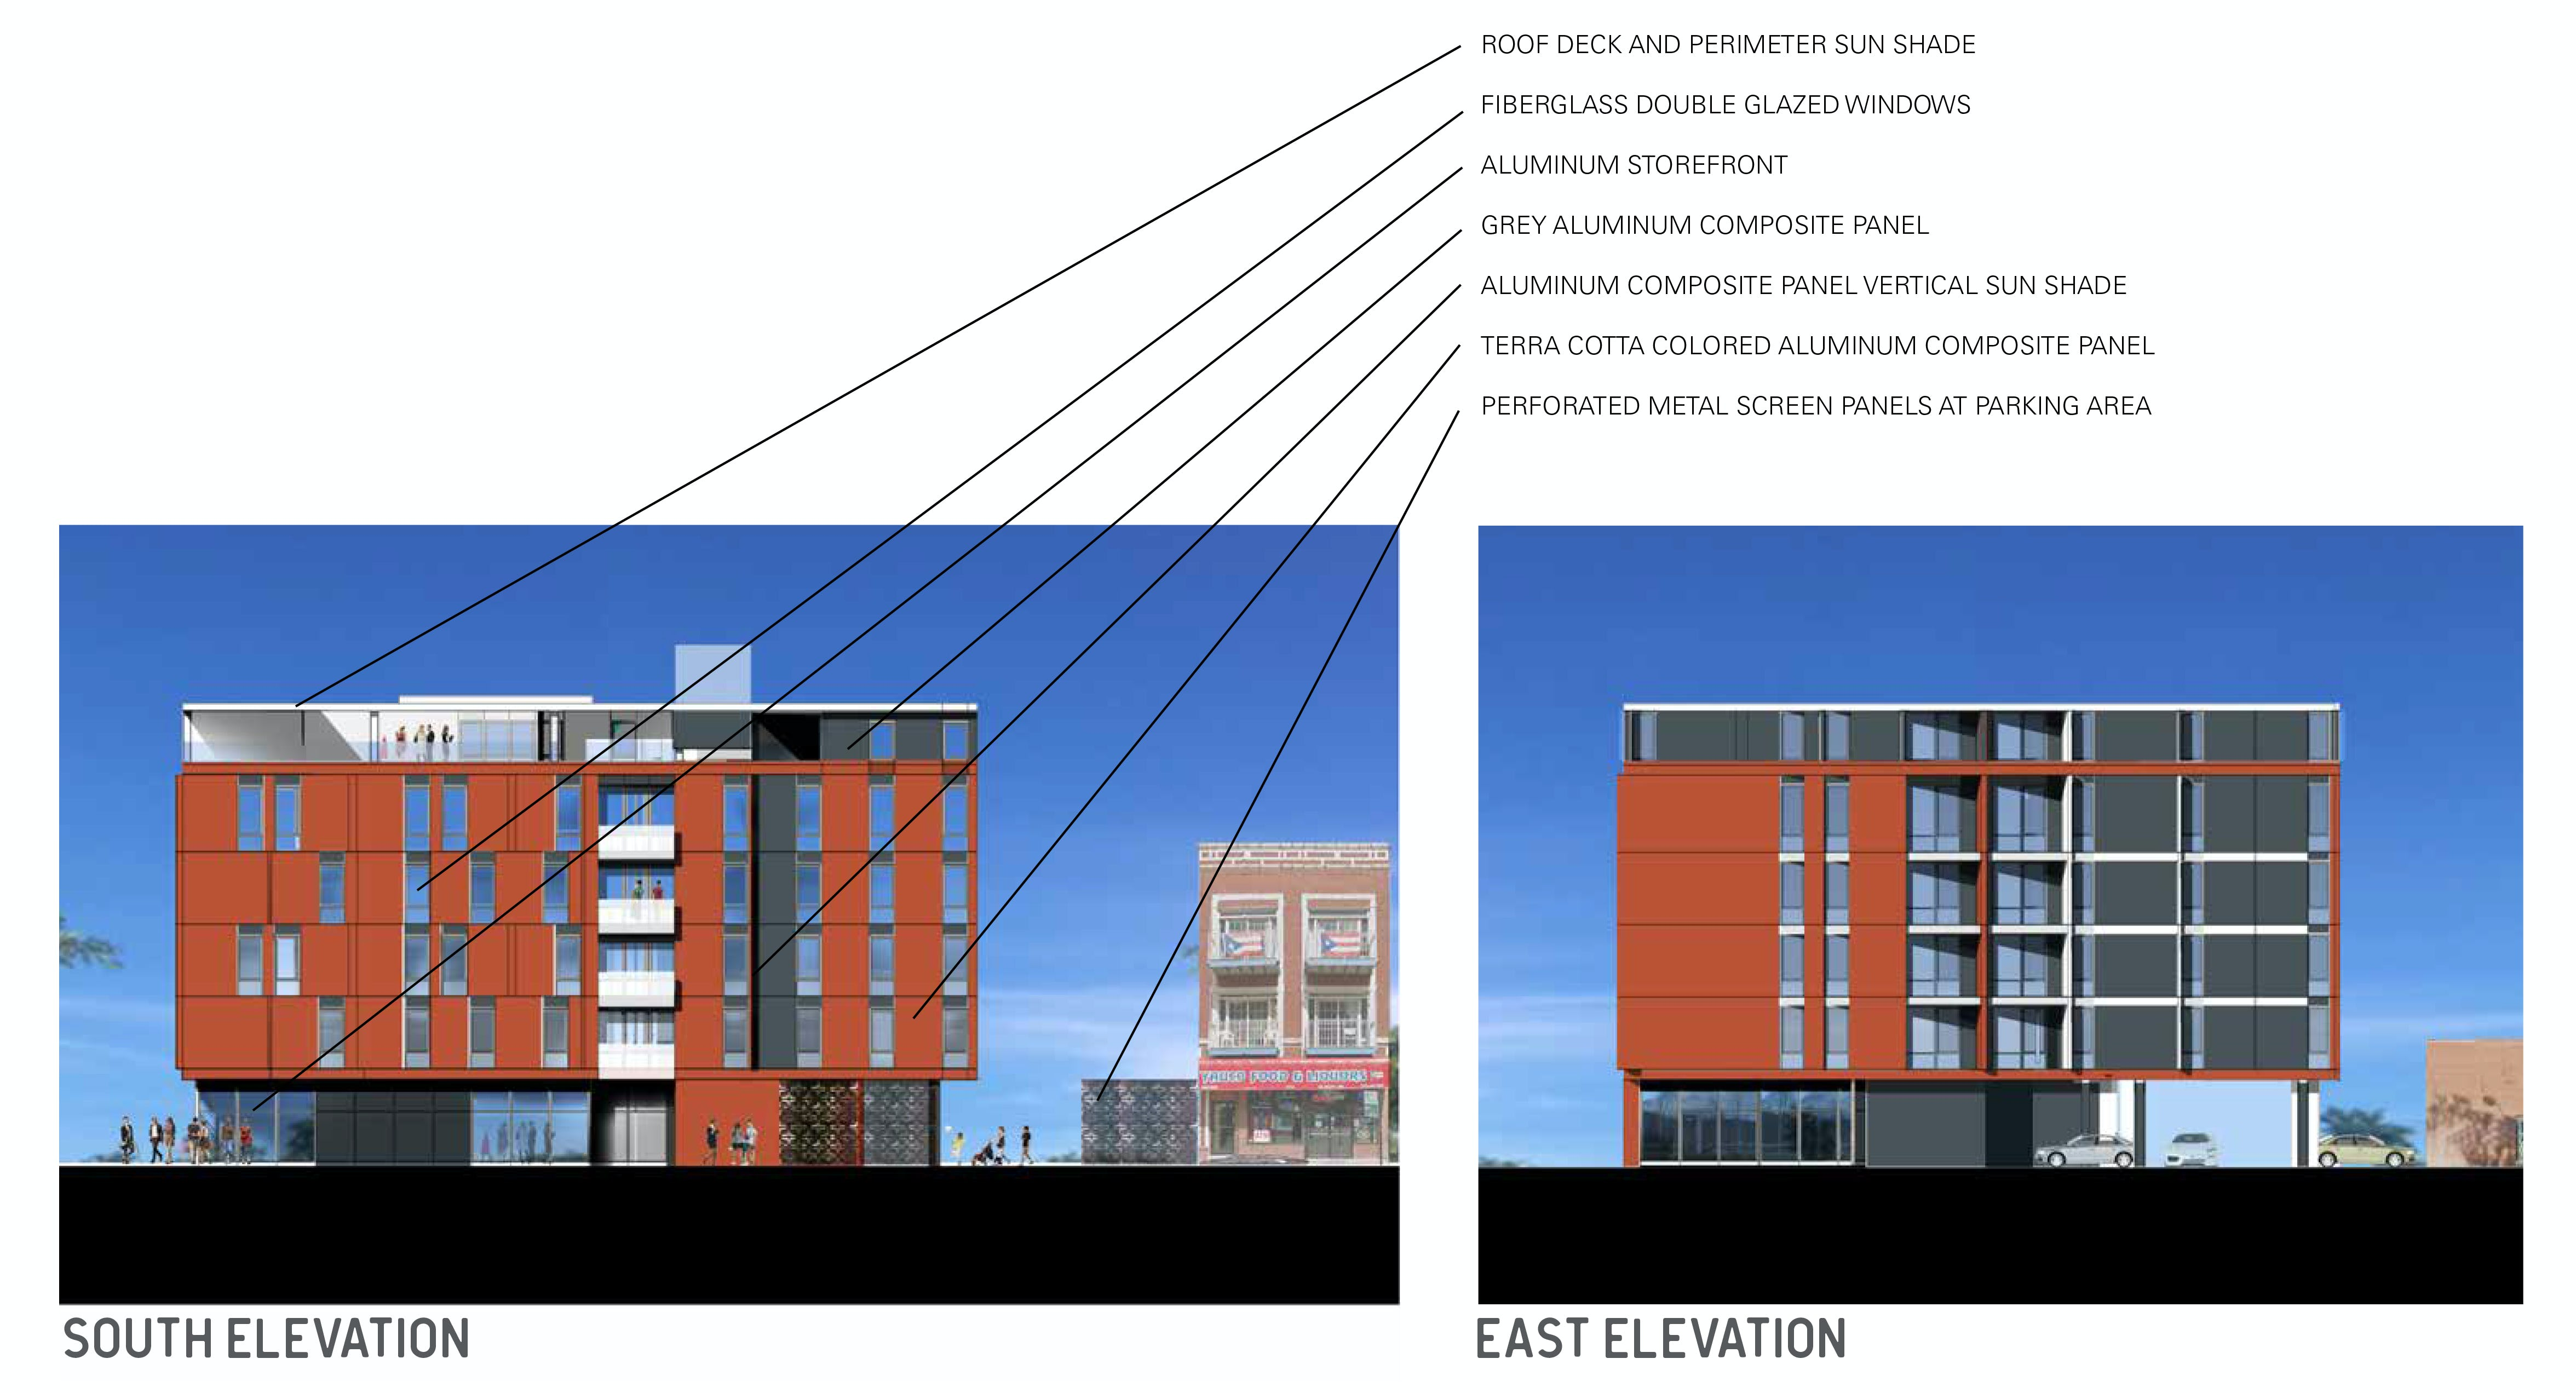 South east elevations